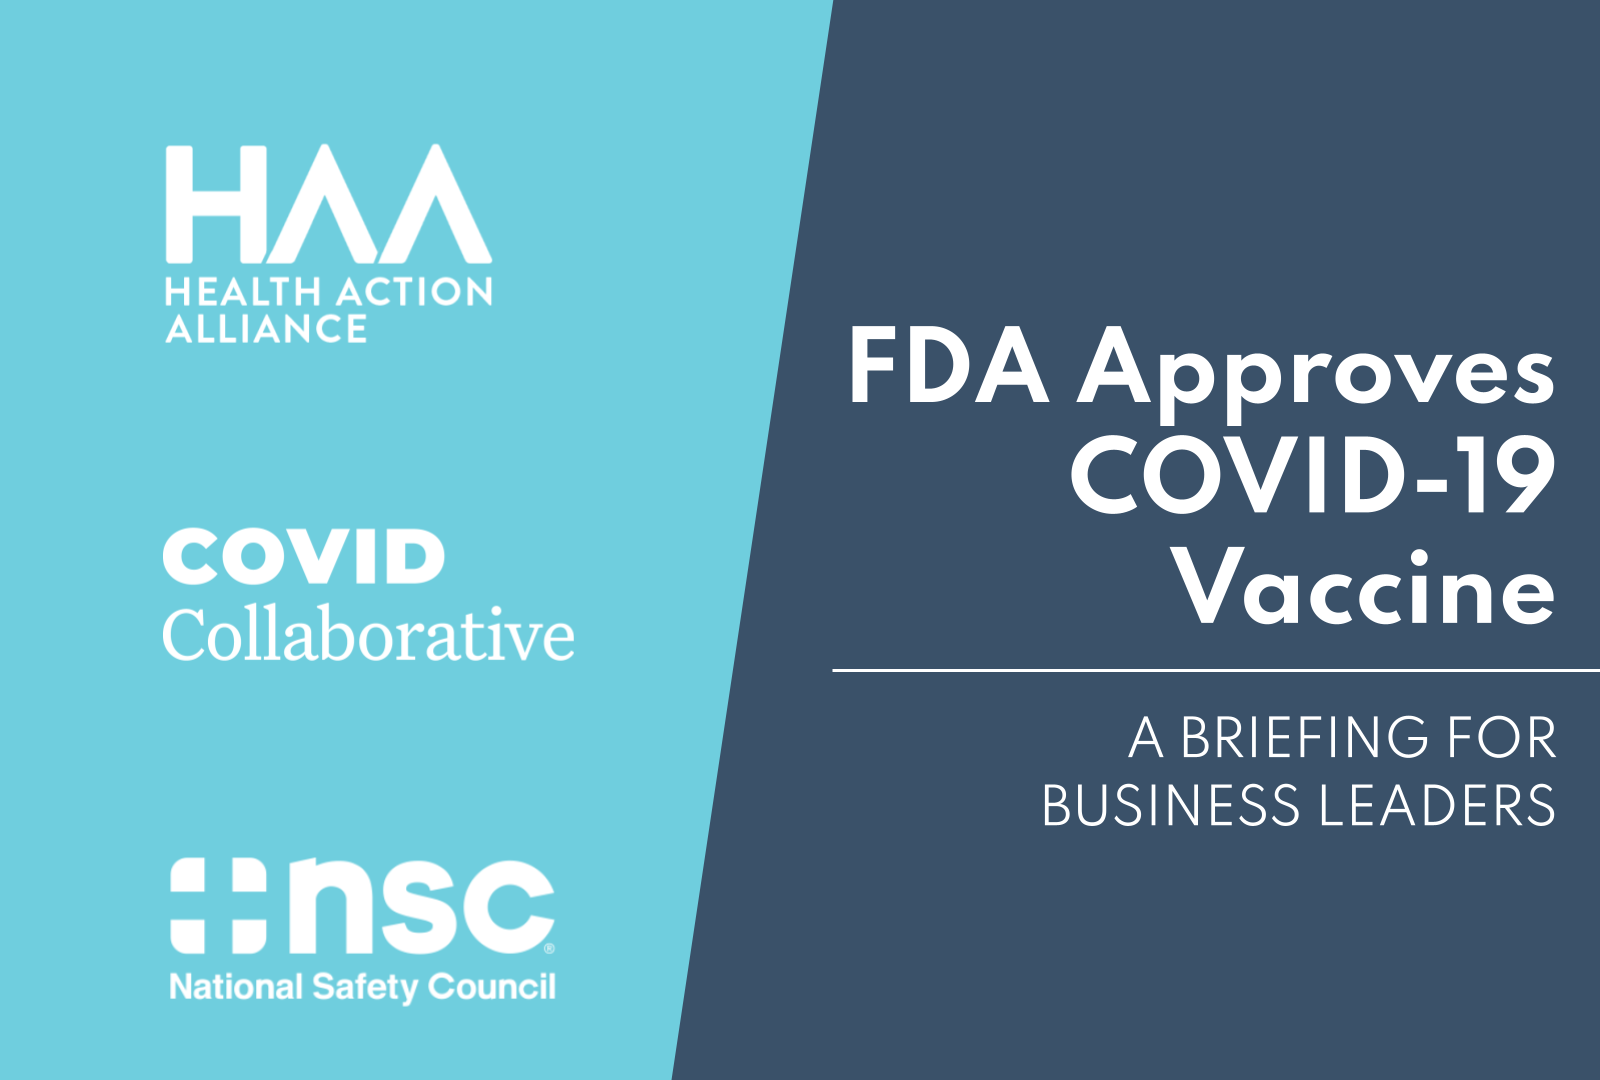 FDA Approves COVID-19 Vaccine: A Briefing for Business Leaders